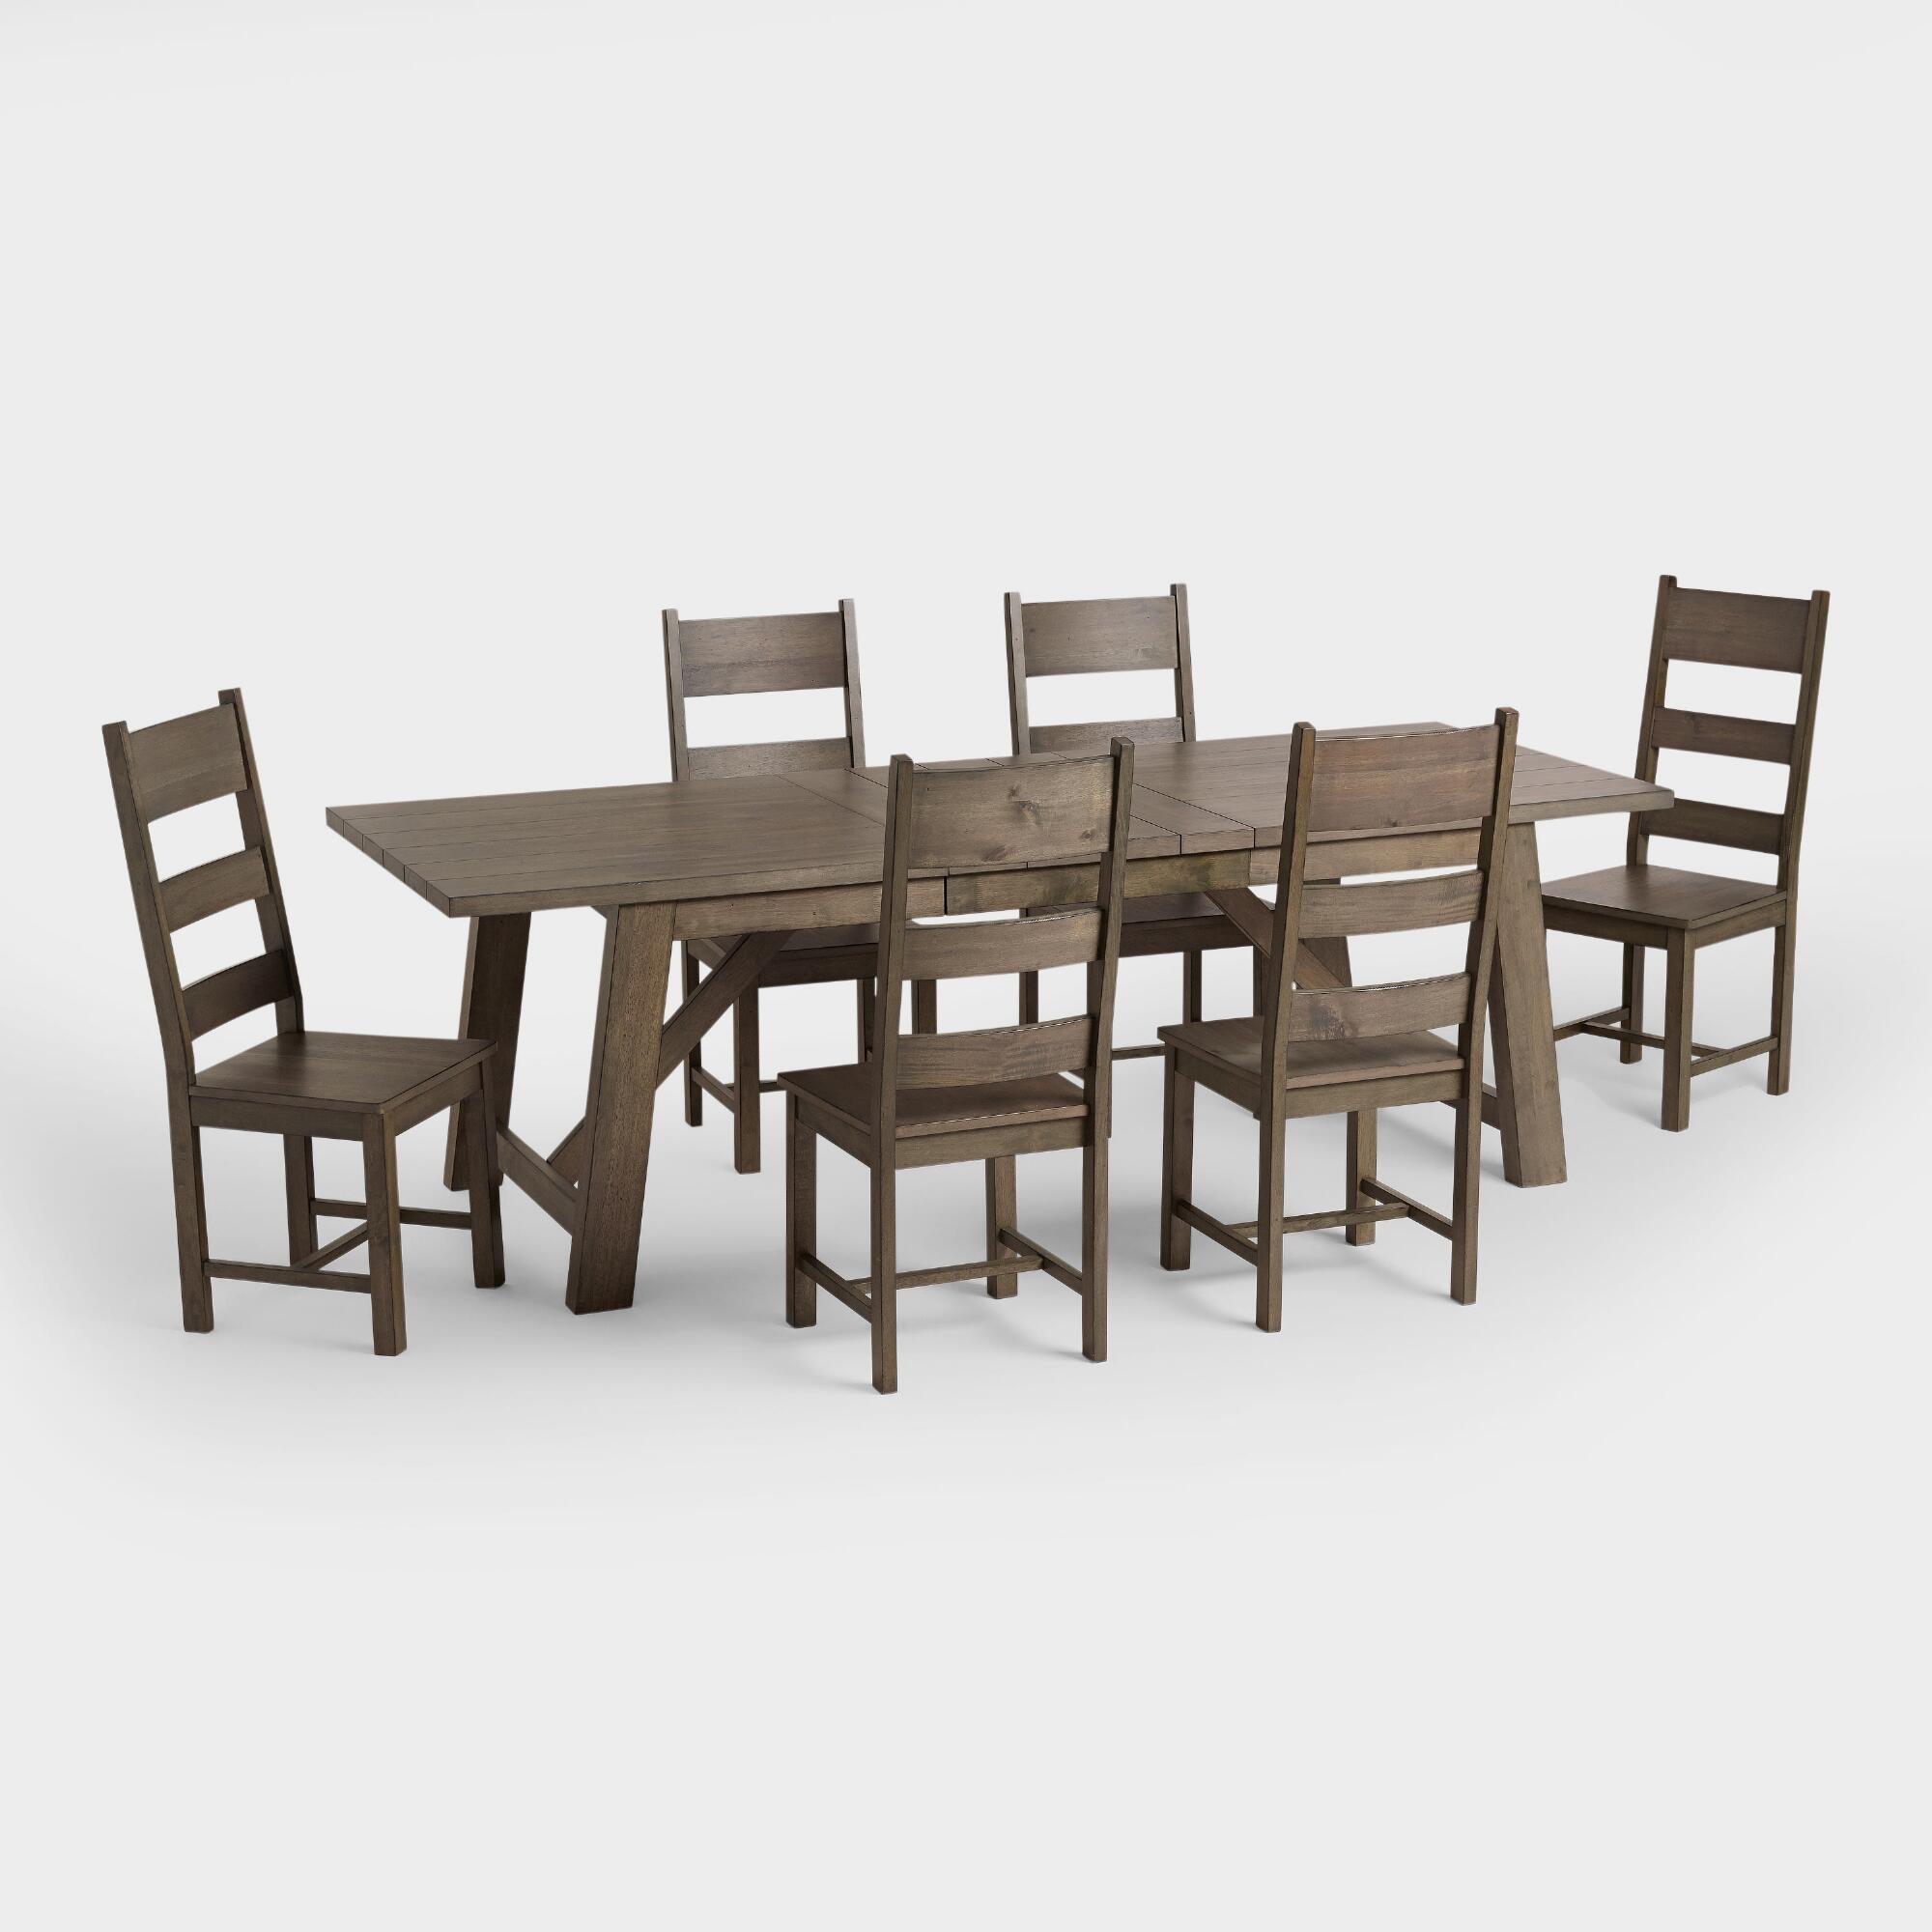 Farmhouse dining furniture collection world market for Furniture collection